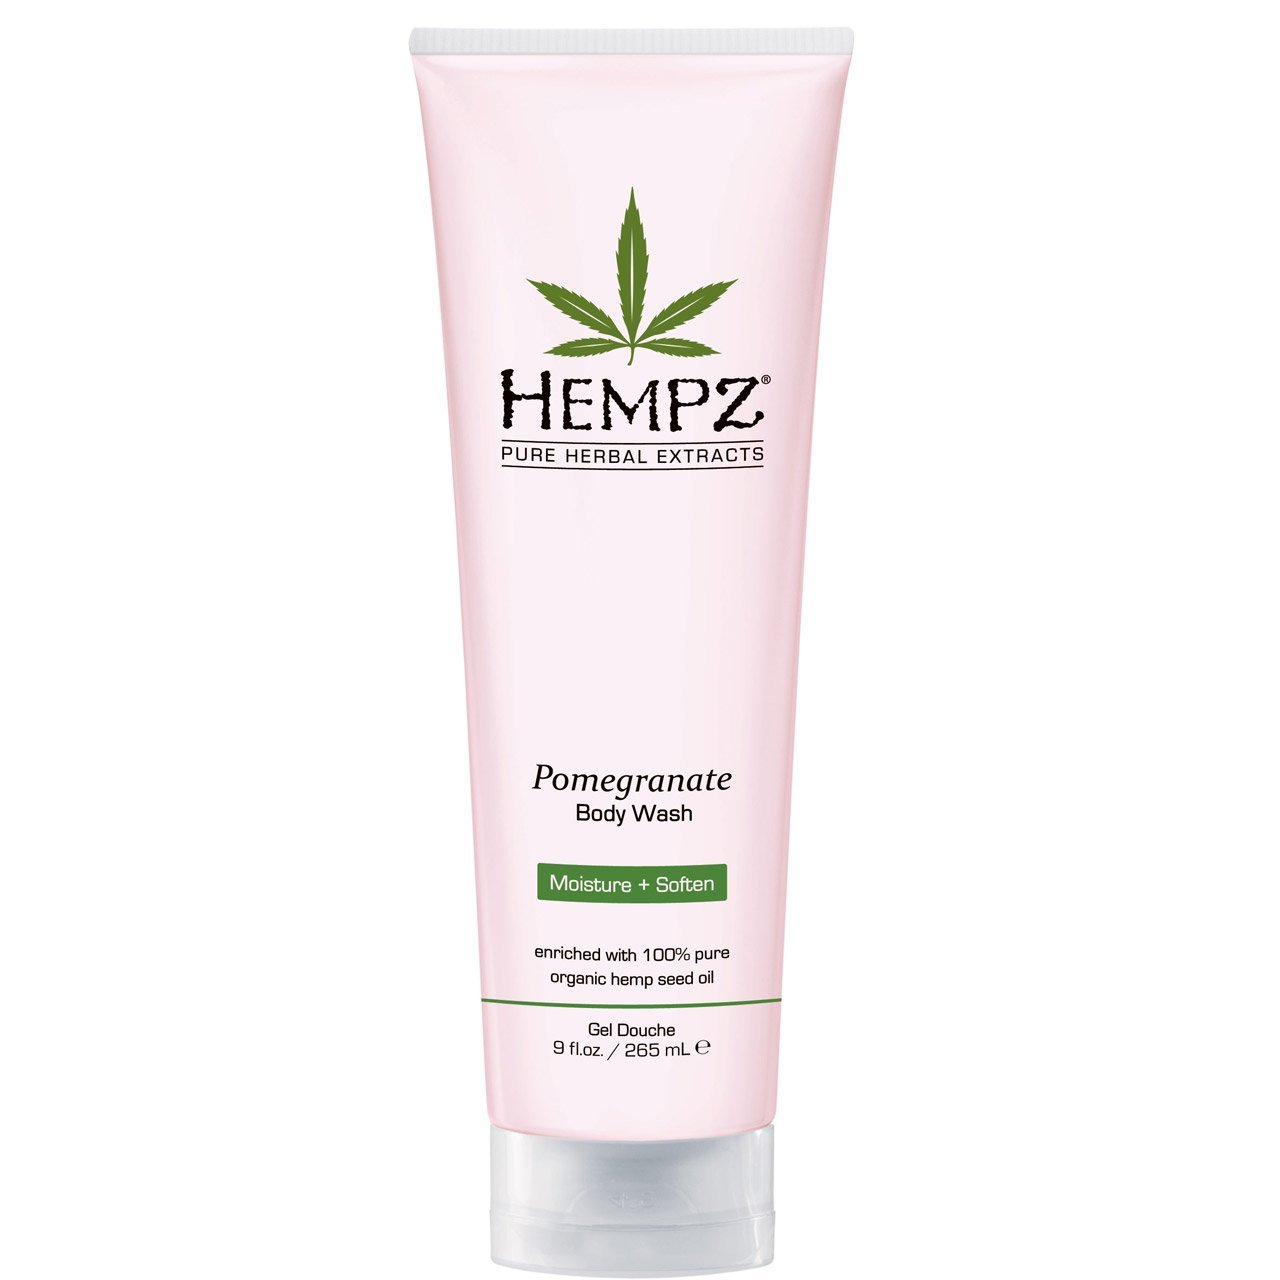 Hempz Гель для душа с ганатом Pomegranate Body Wash 250 мл